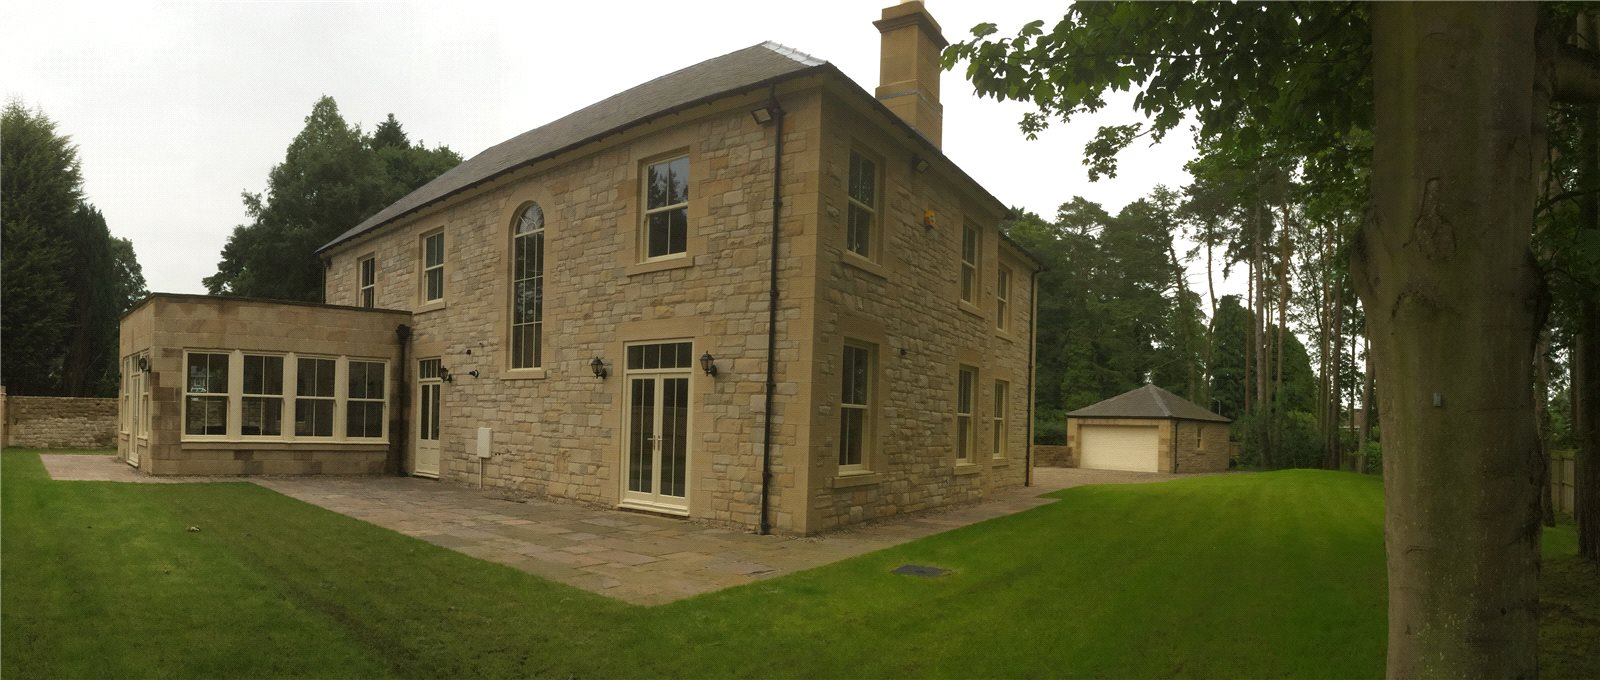 Additional photo for property listing at Fir Tree Copse, Hepscott, Morpeth, Northumberland, NE61 Morpeth, Engeland